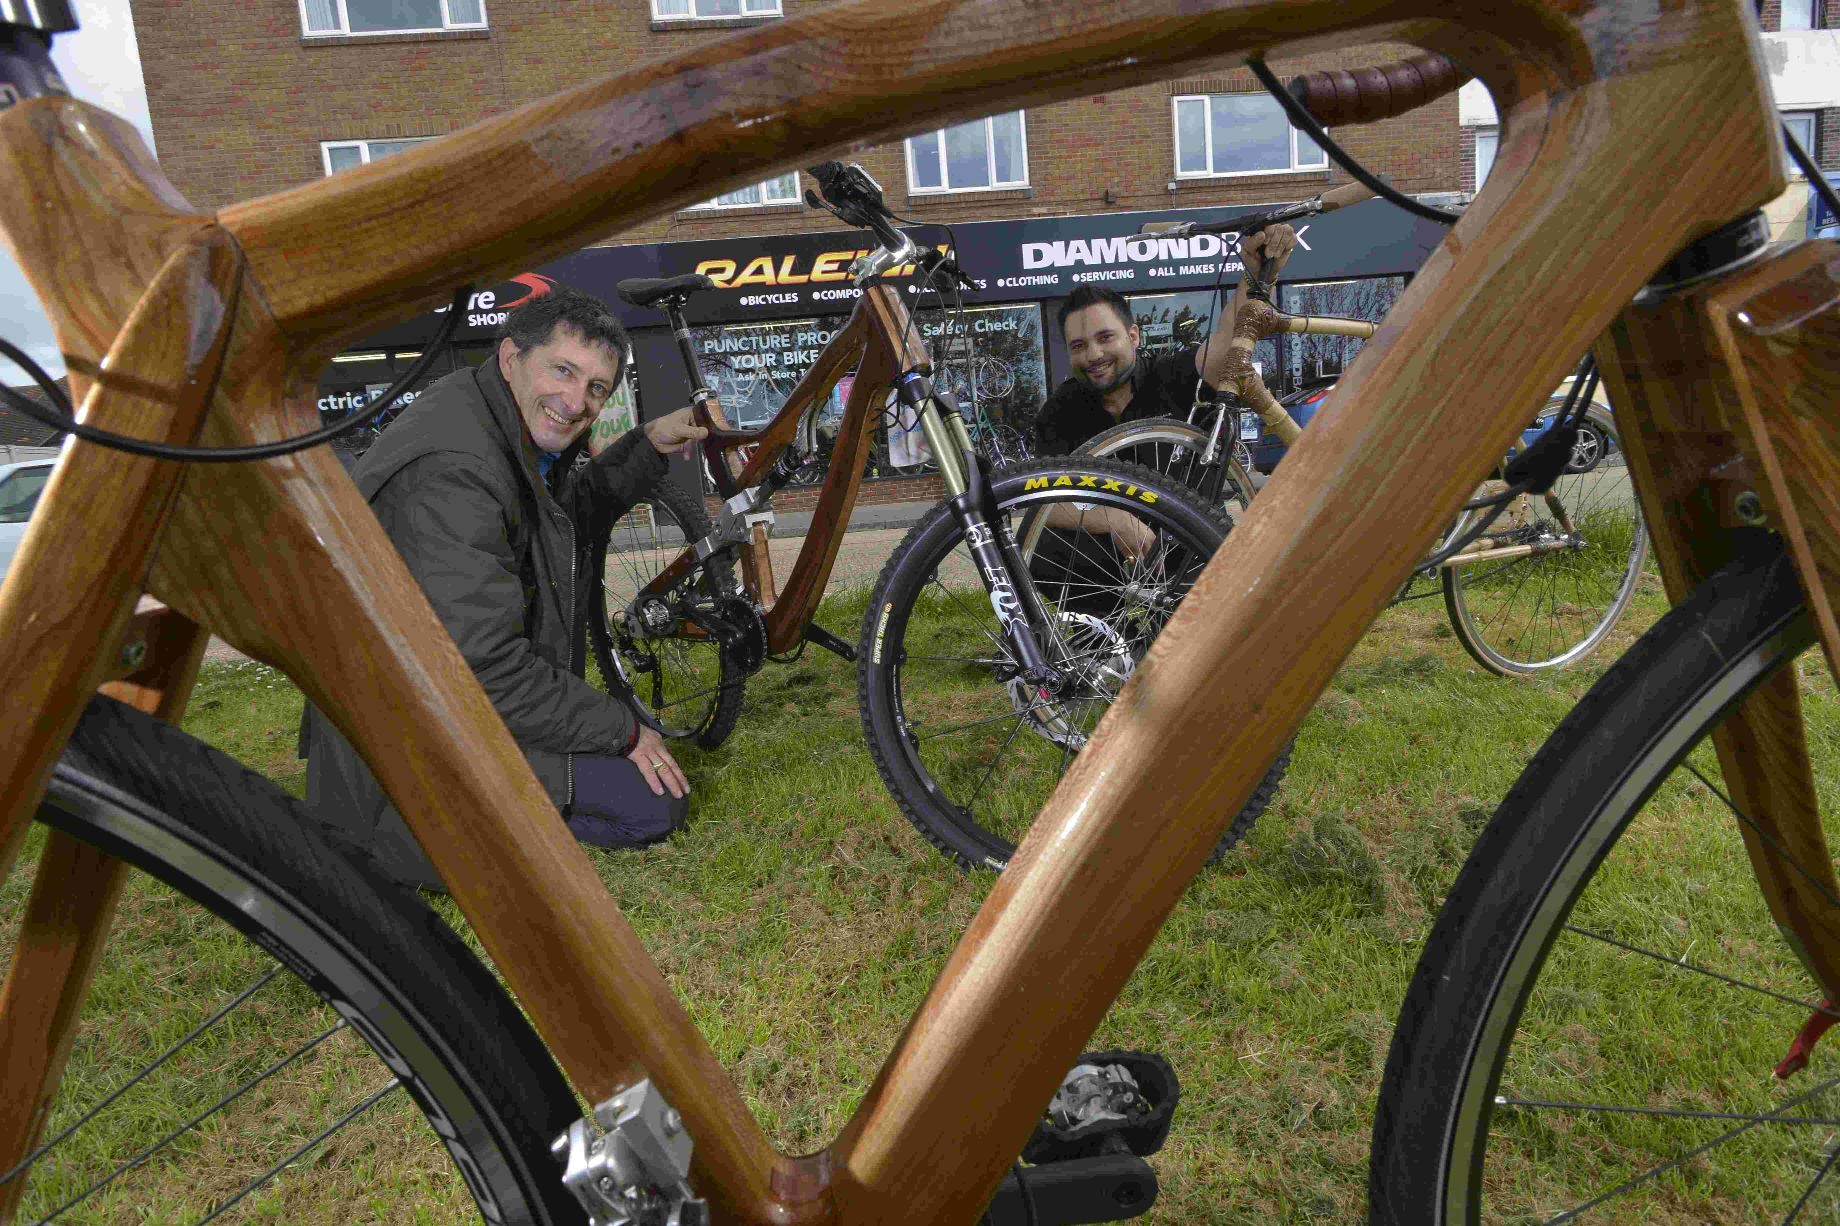 Cycling enthusiasts make road and mountain bikes out of wood and bamboo